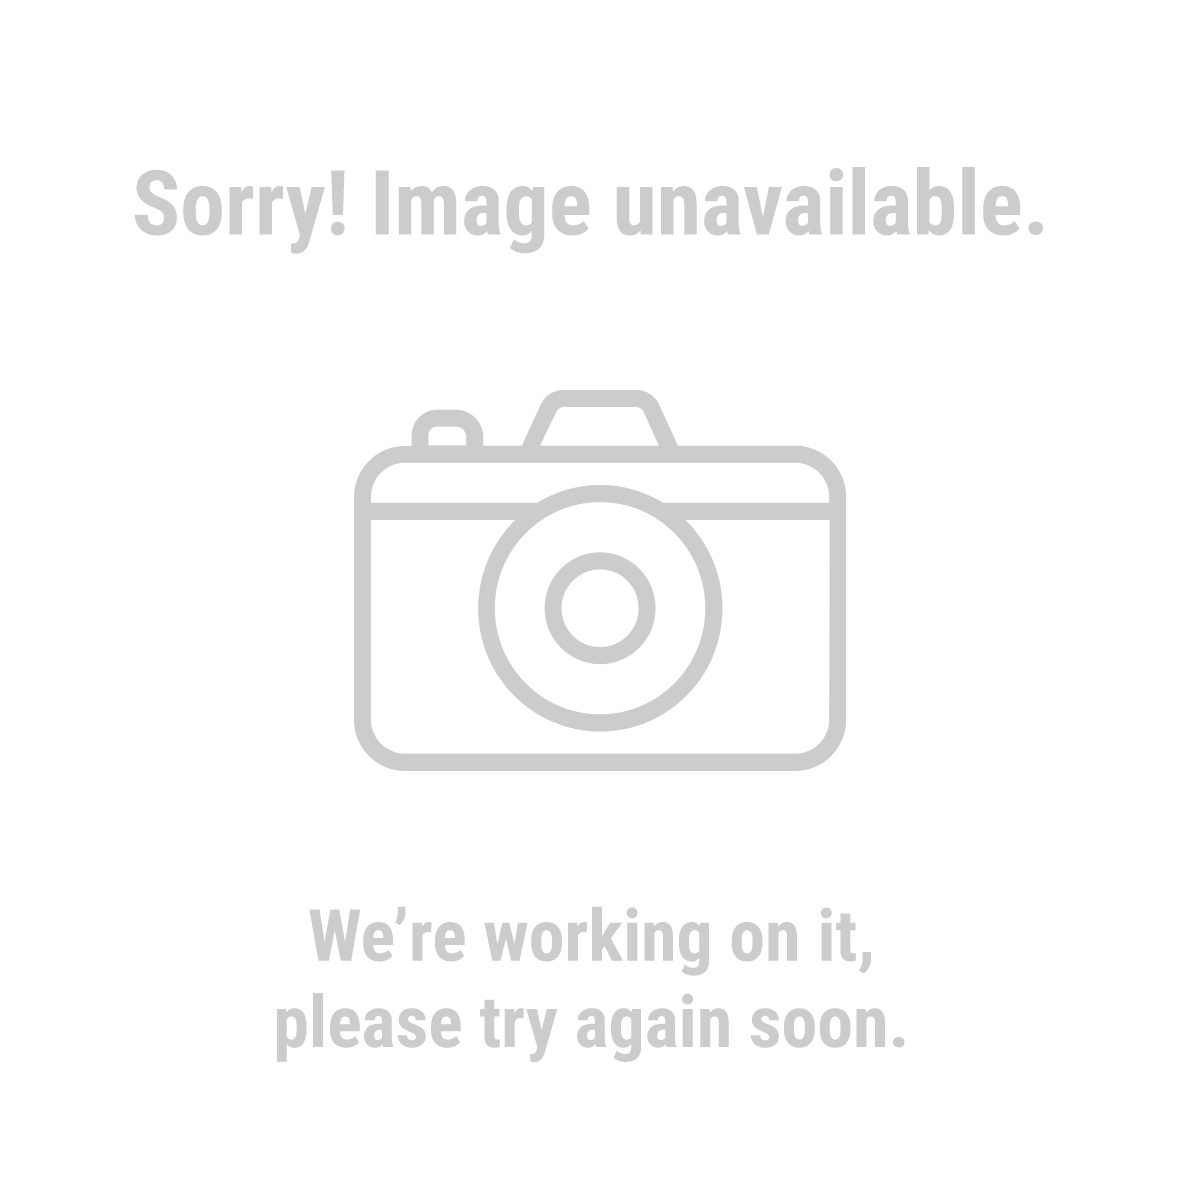 Western Safety 68309 Mechanics Gloves, X-Large